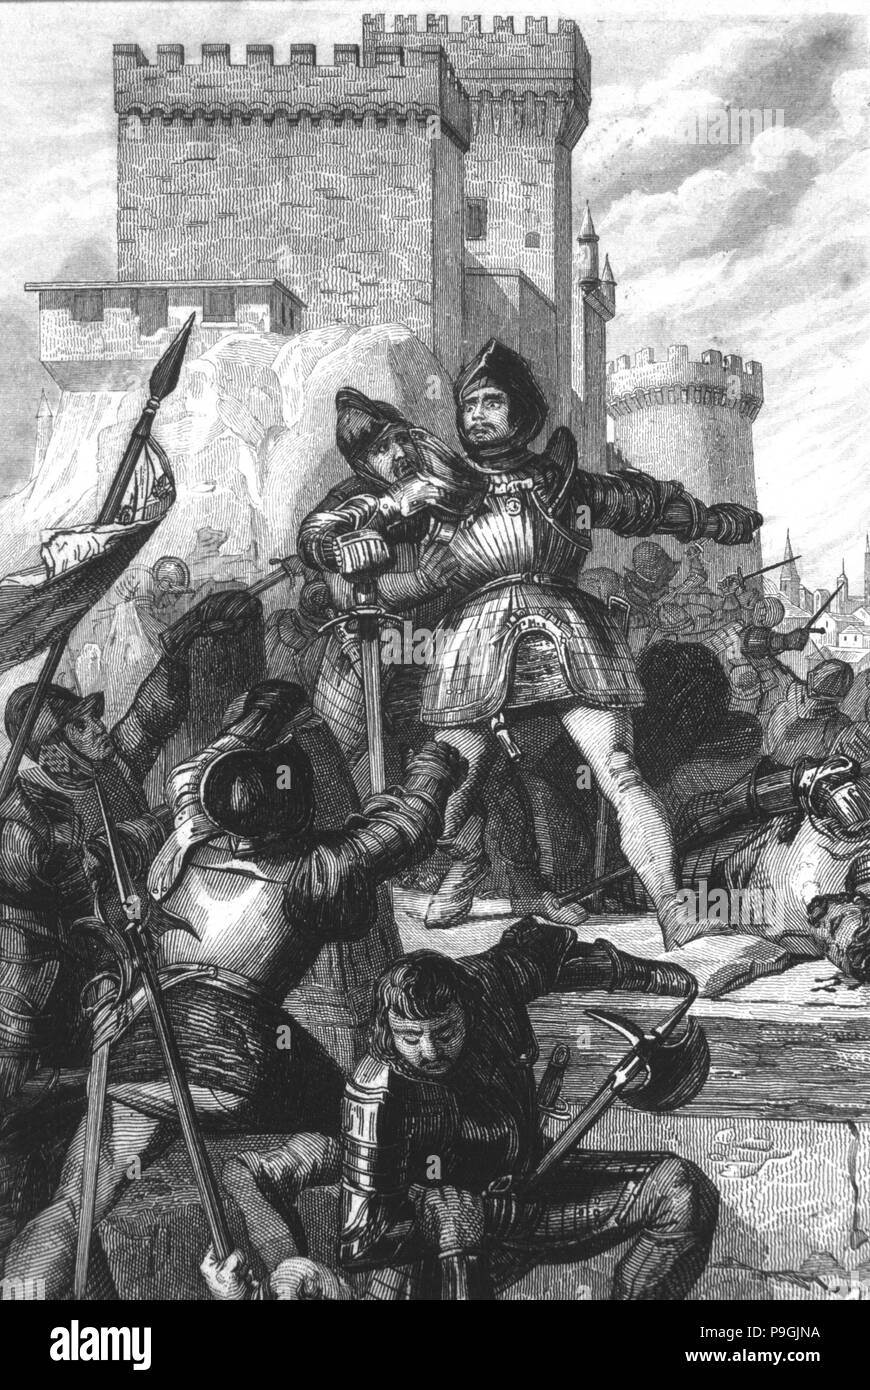 The Comuneros fighting in Toledo after the battle of Villalar (1521). - Stock Image